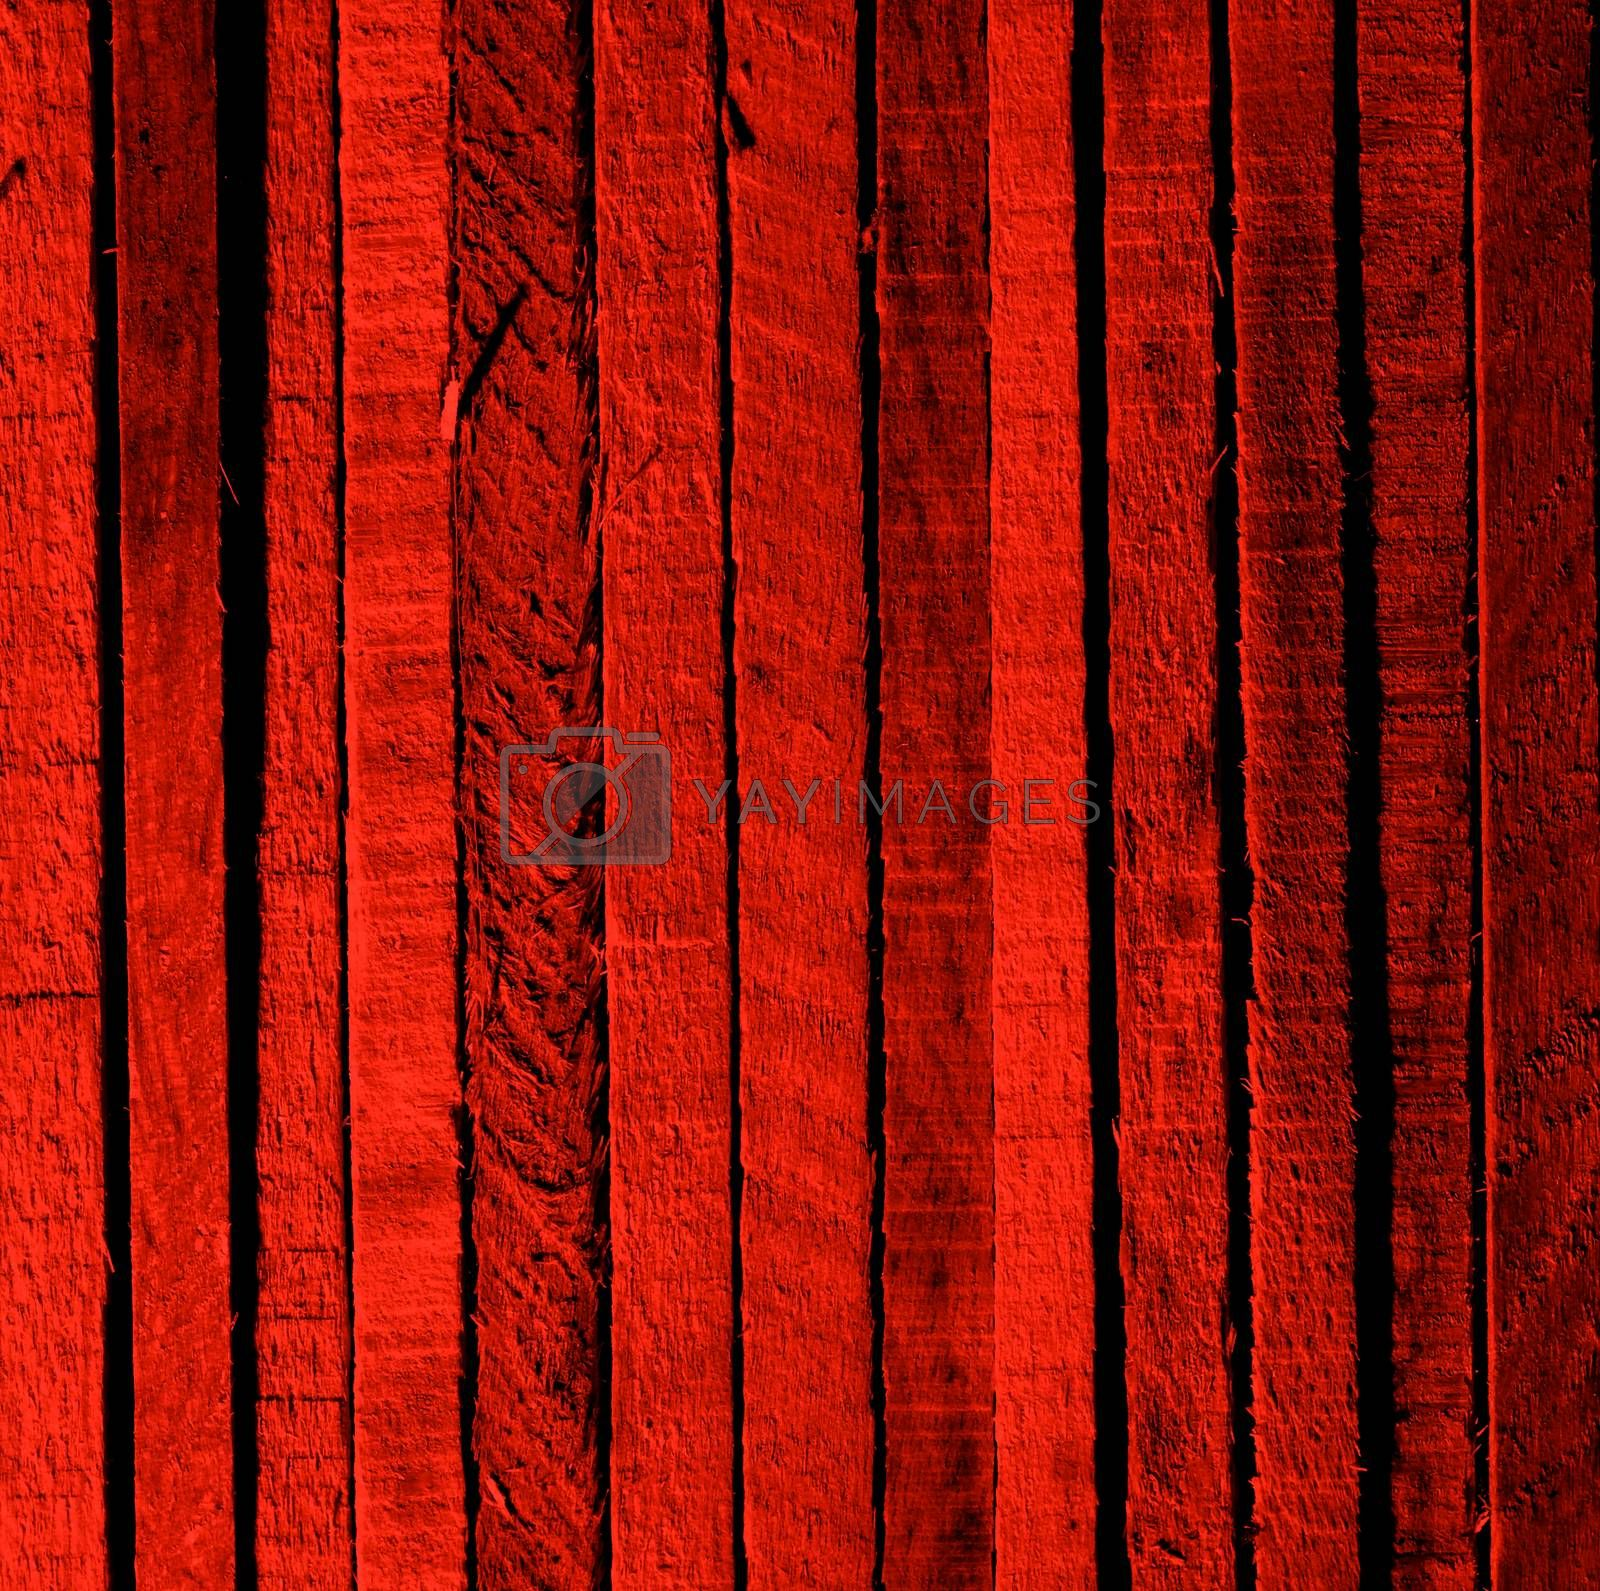 Dark Red Background of Cracked Wooden Plank closeup